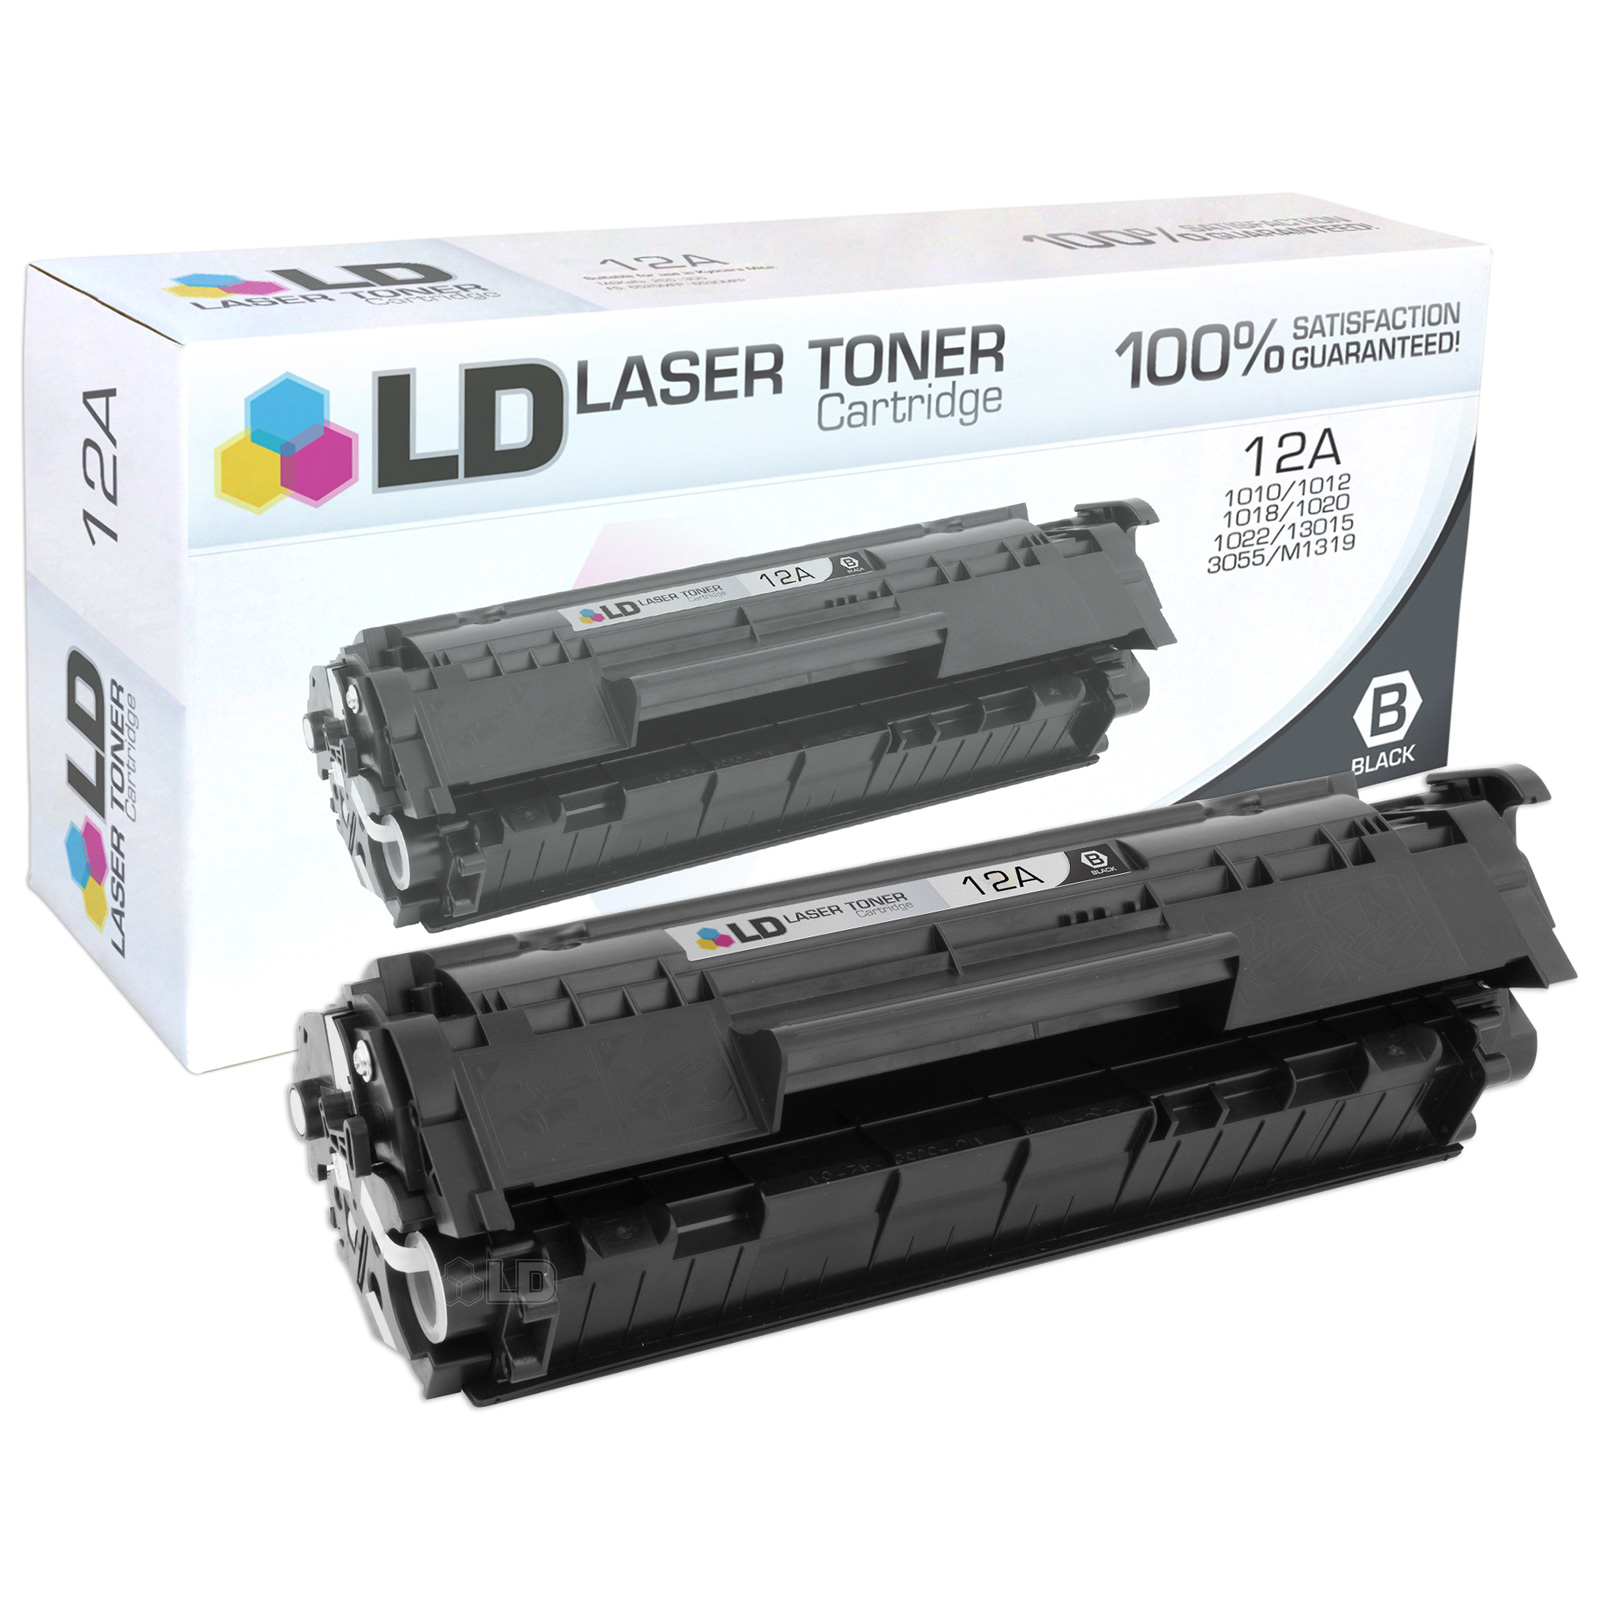 LD Compatible Replacement for HP Q2612A / 12A Black Laser Toner Cartridge for HP LaserJet Printer Series